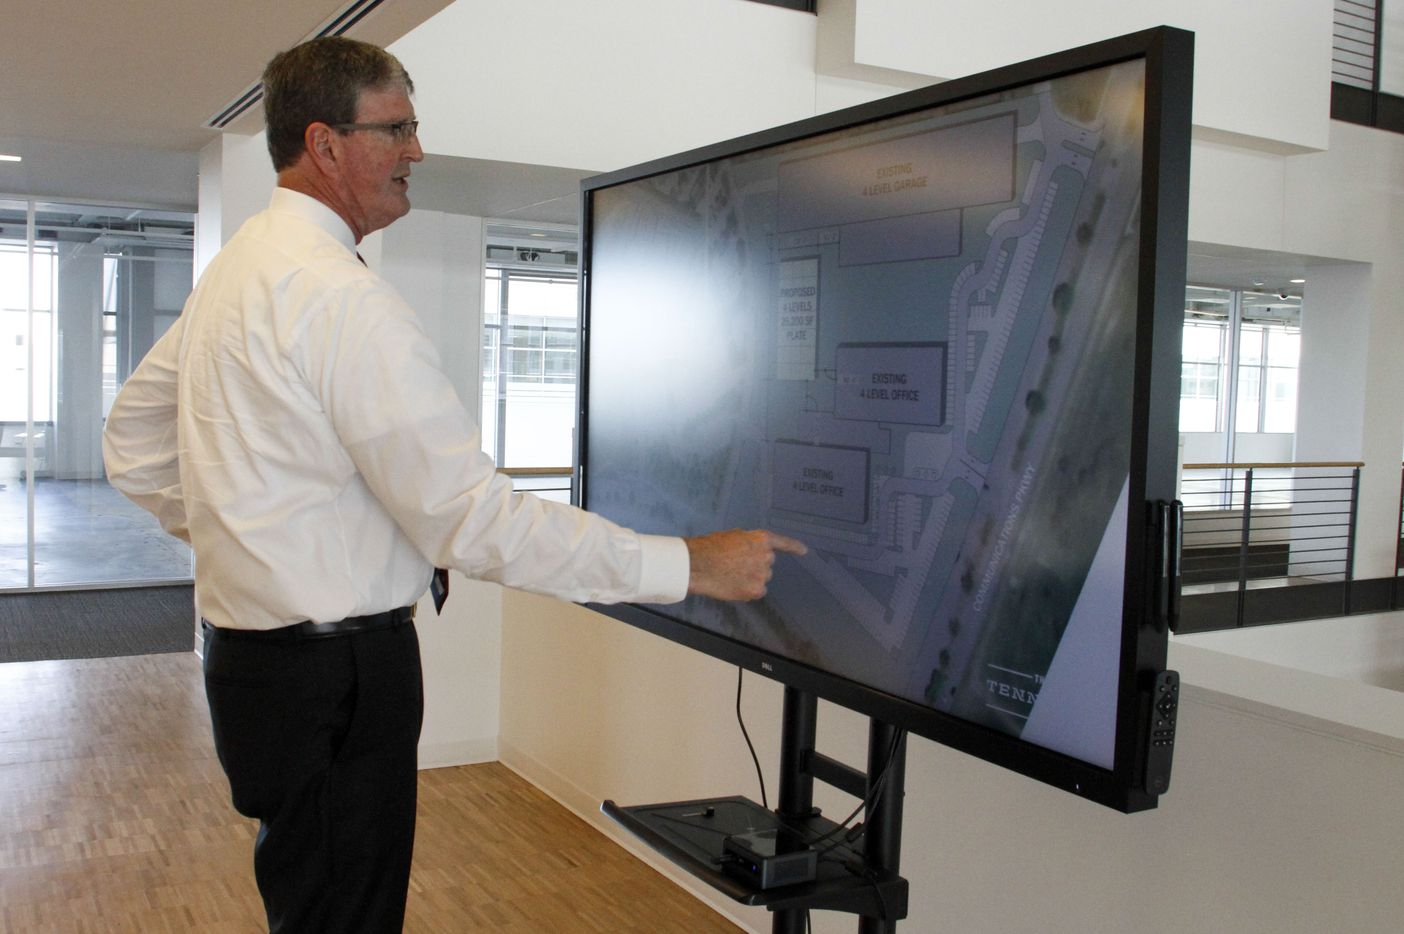 John F. Brownlee, Principal at Peloton Commercial Real Estate, points to a layout of a former Ericsson office building that Peloton is offering up for lease in Plano. (Brian Elledge/The Dallas Morning News)